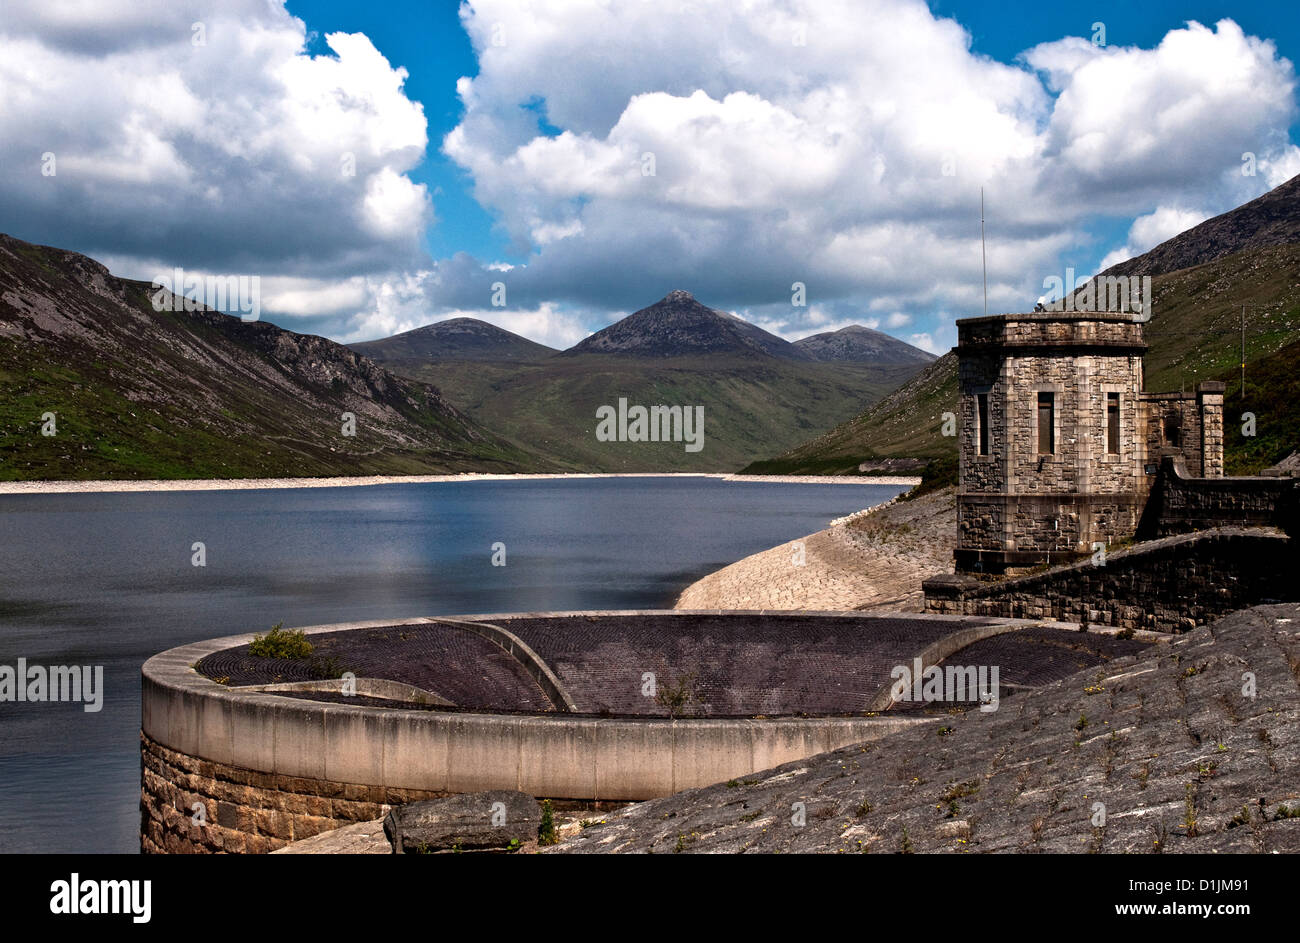 Silent Valley Dam County Down Northern Ireland - Stock Image